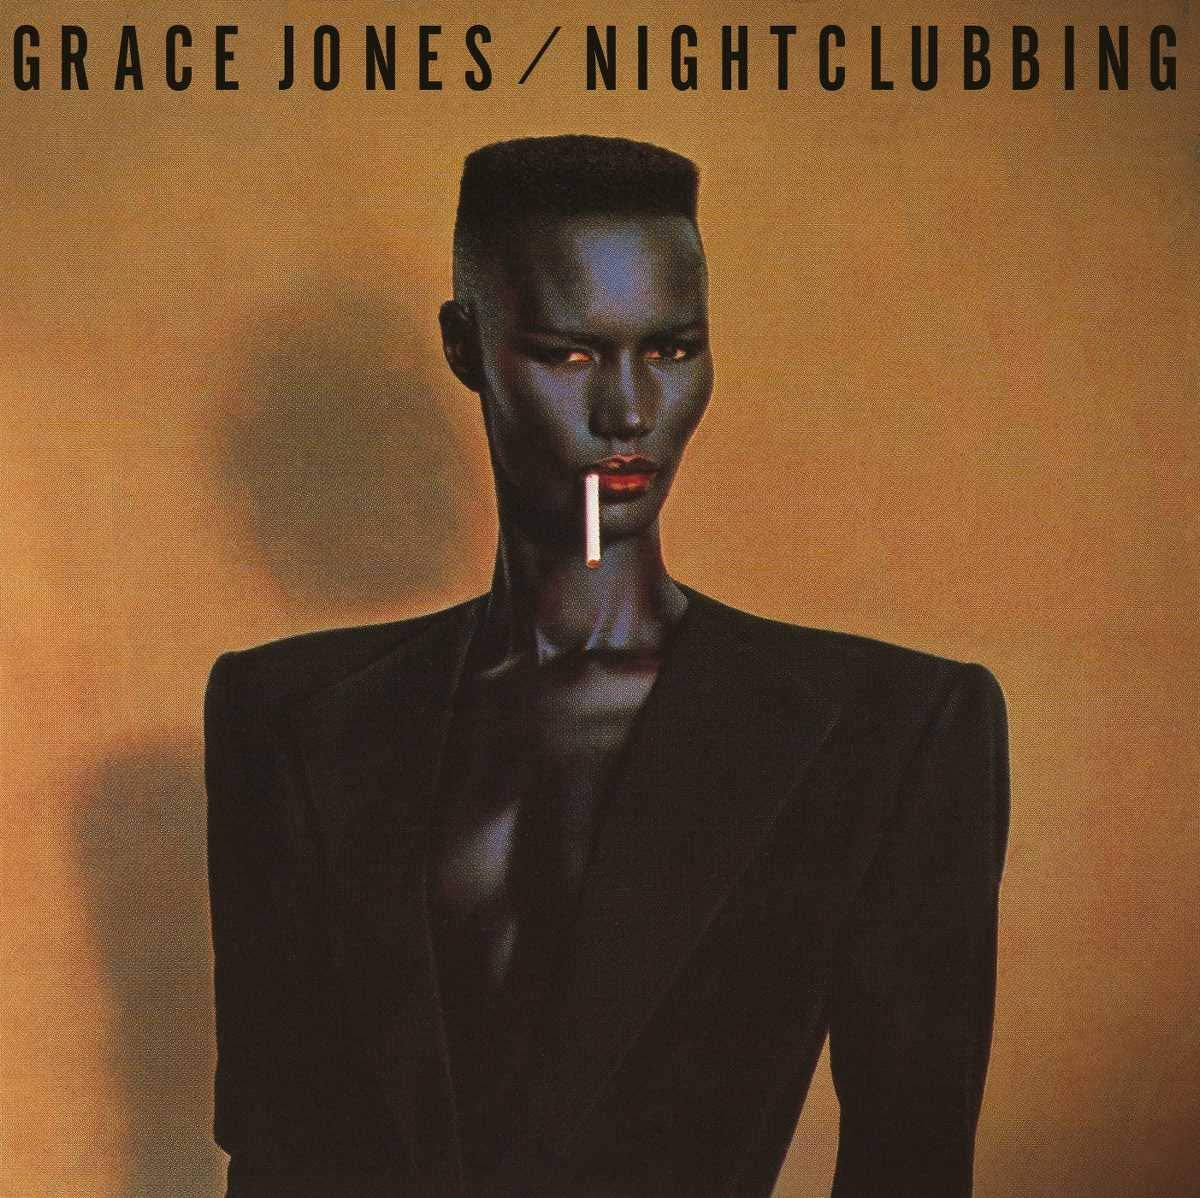 Grace Jones Night Clubbing Album Cover - Adsum